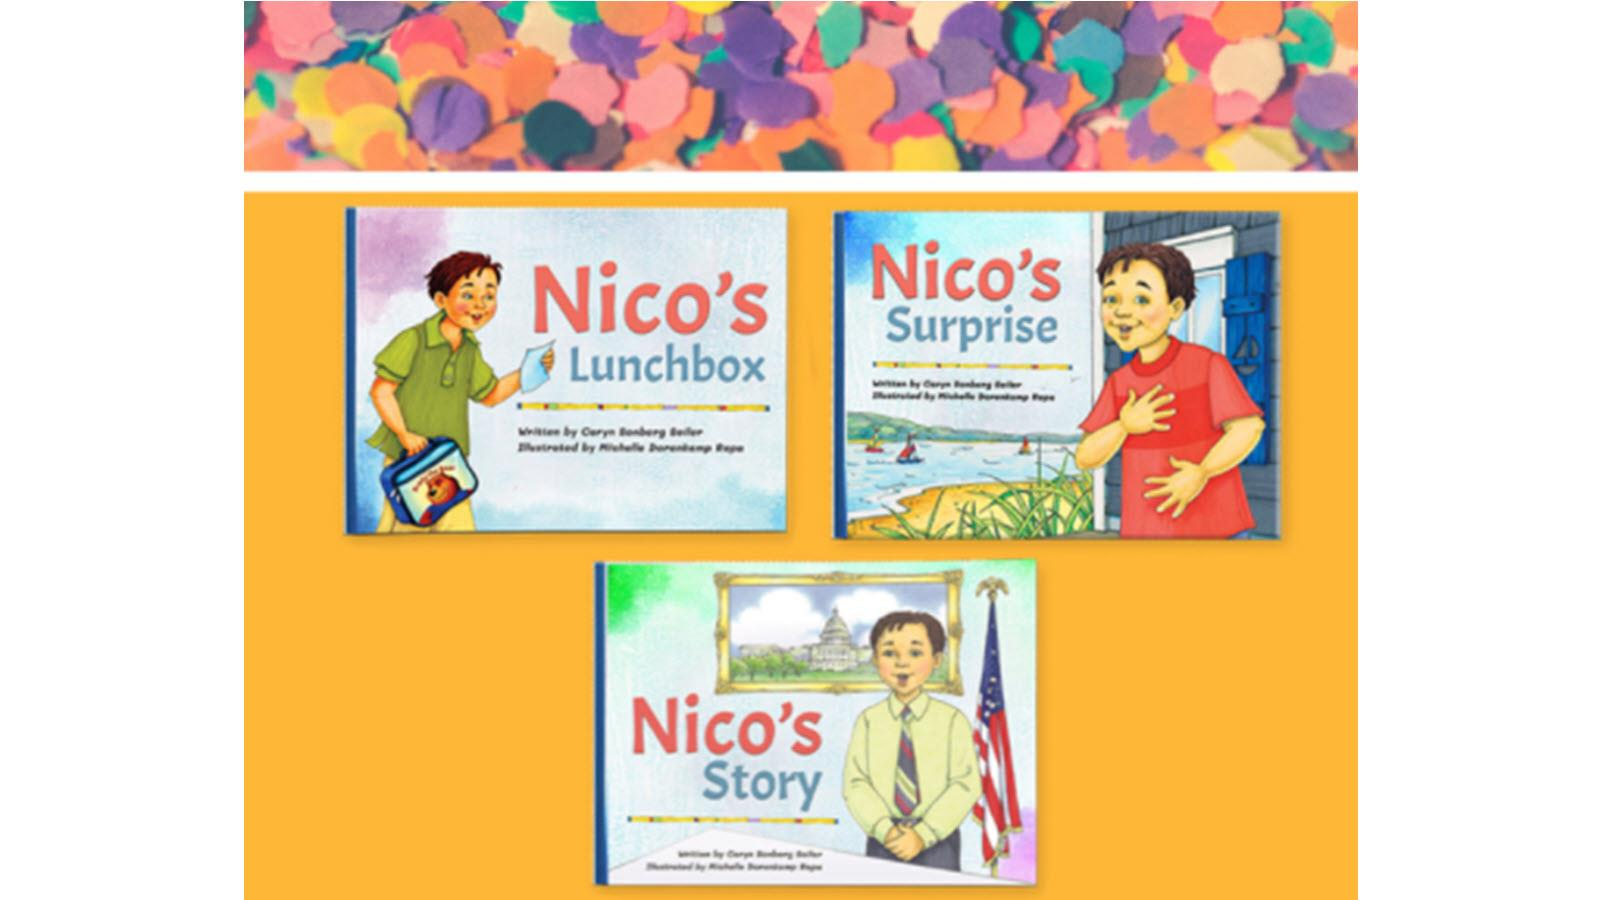 Three children's book covers from the Nico series about HAE